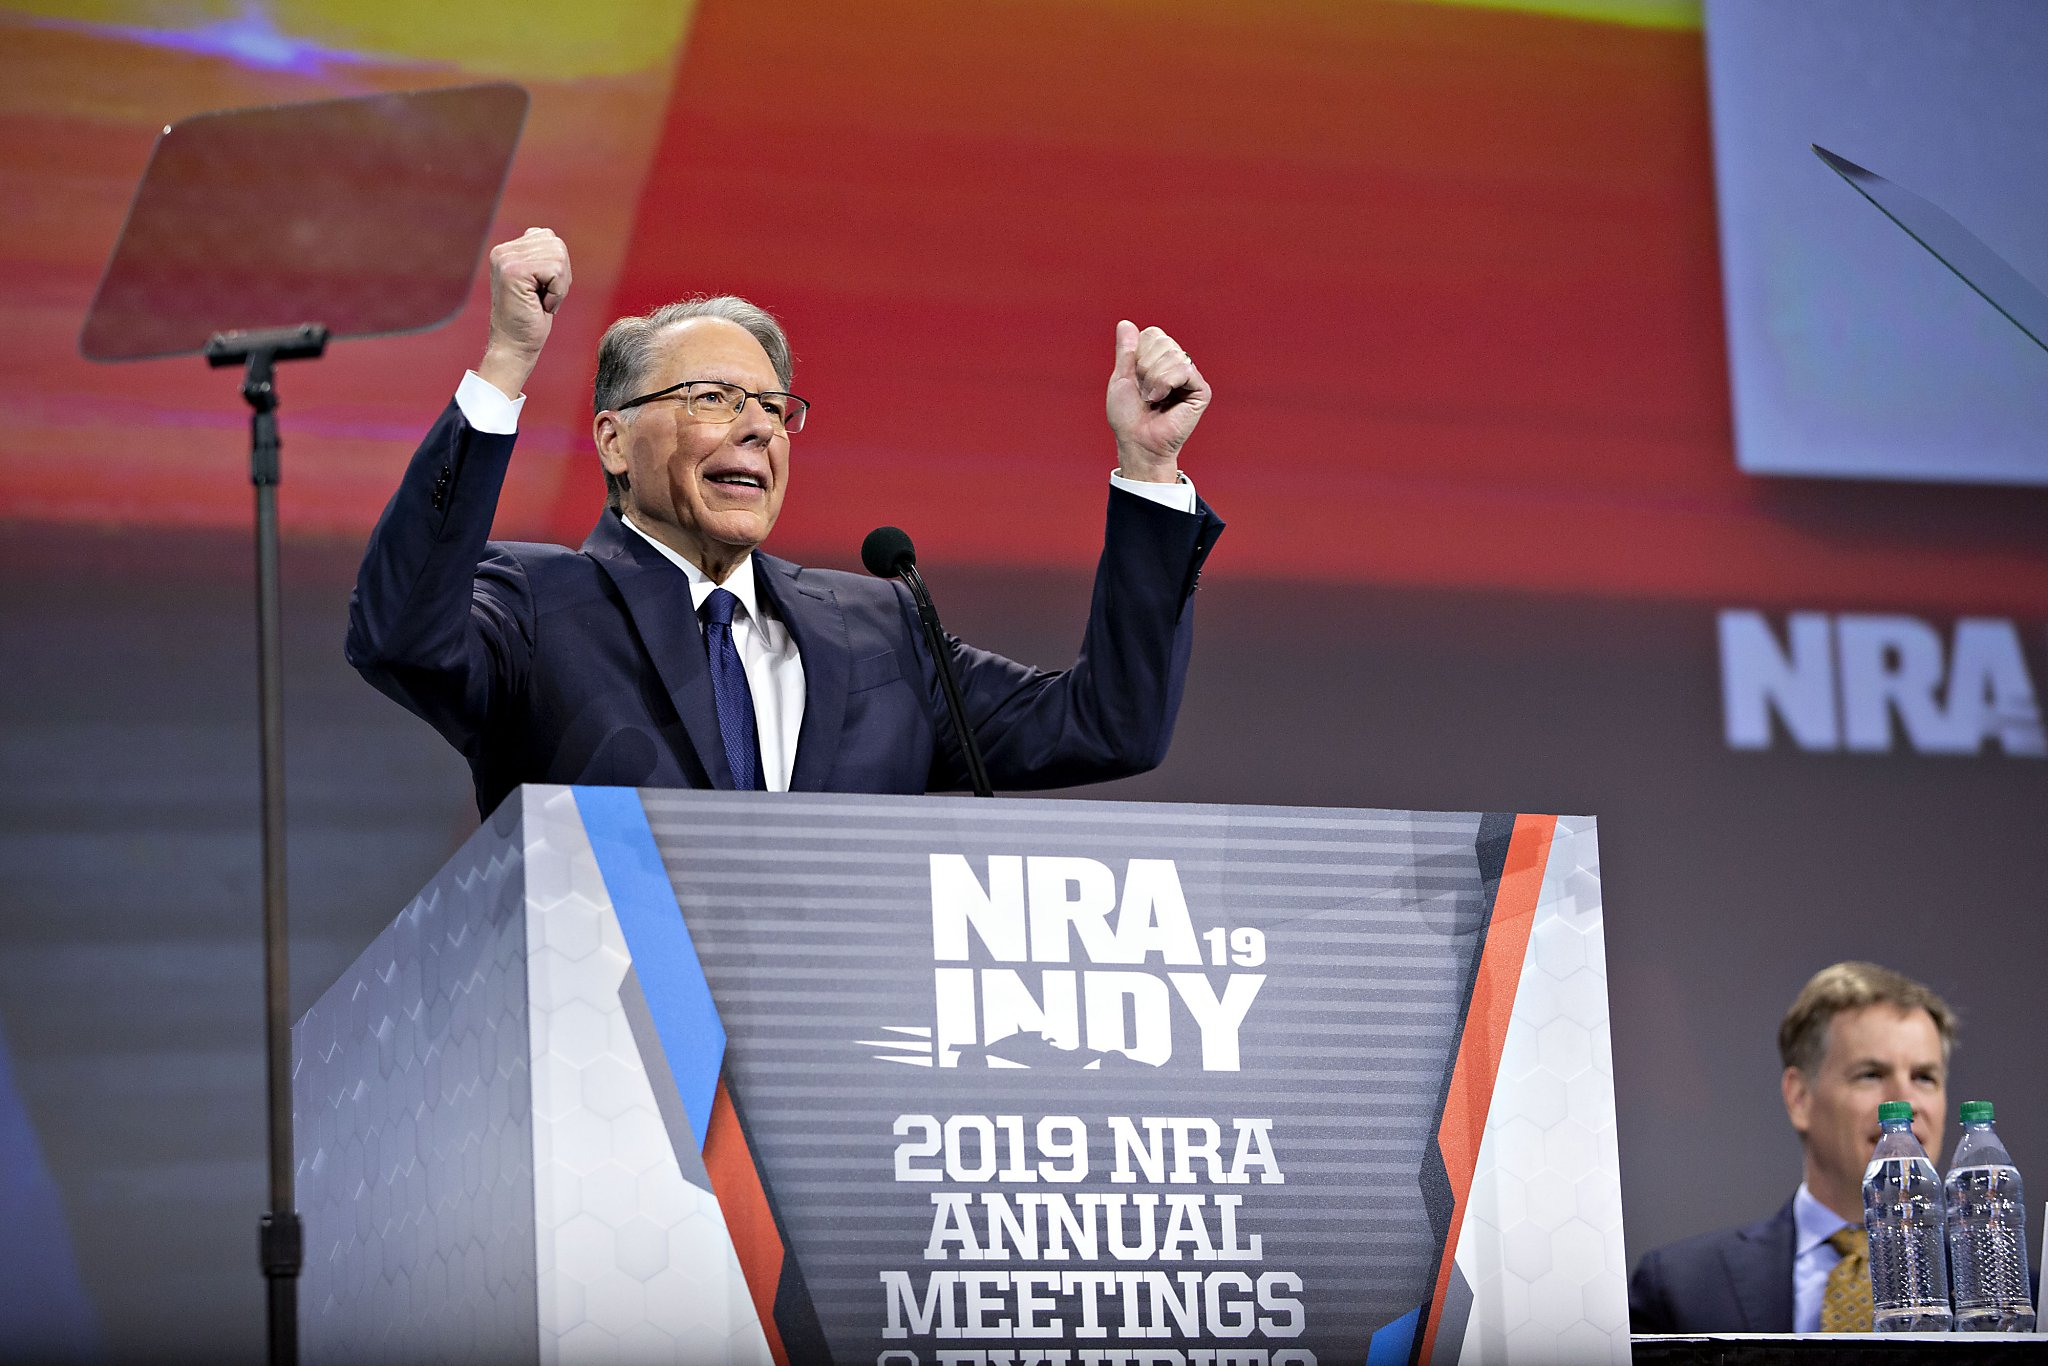 NRA money flowed to board members amid allegedly lavish spending by officials, vendors